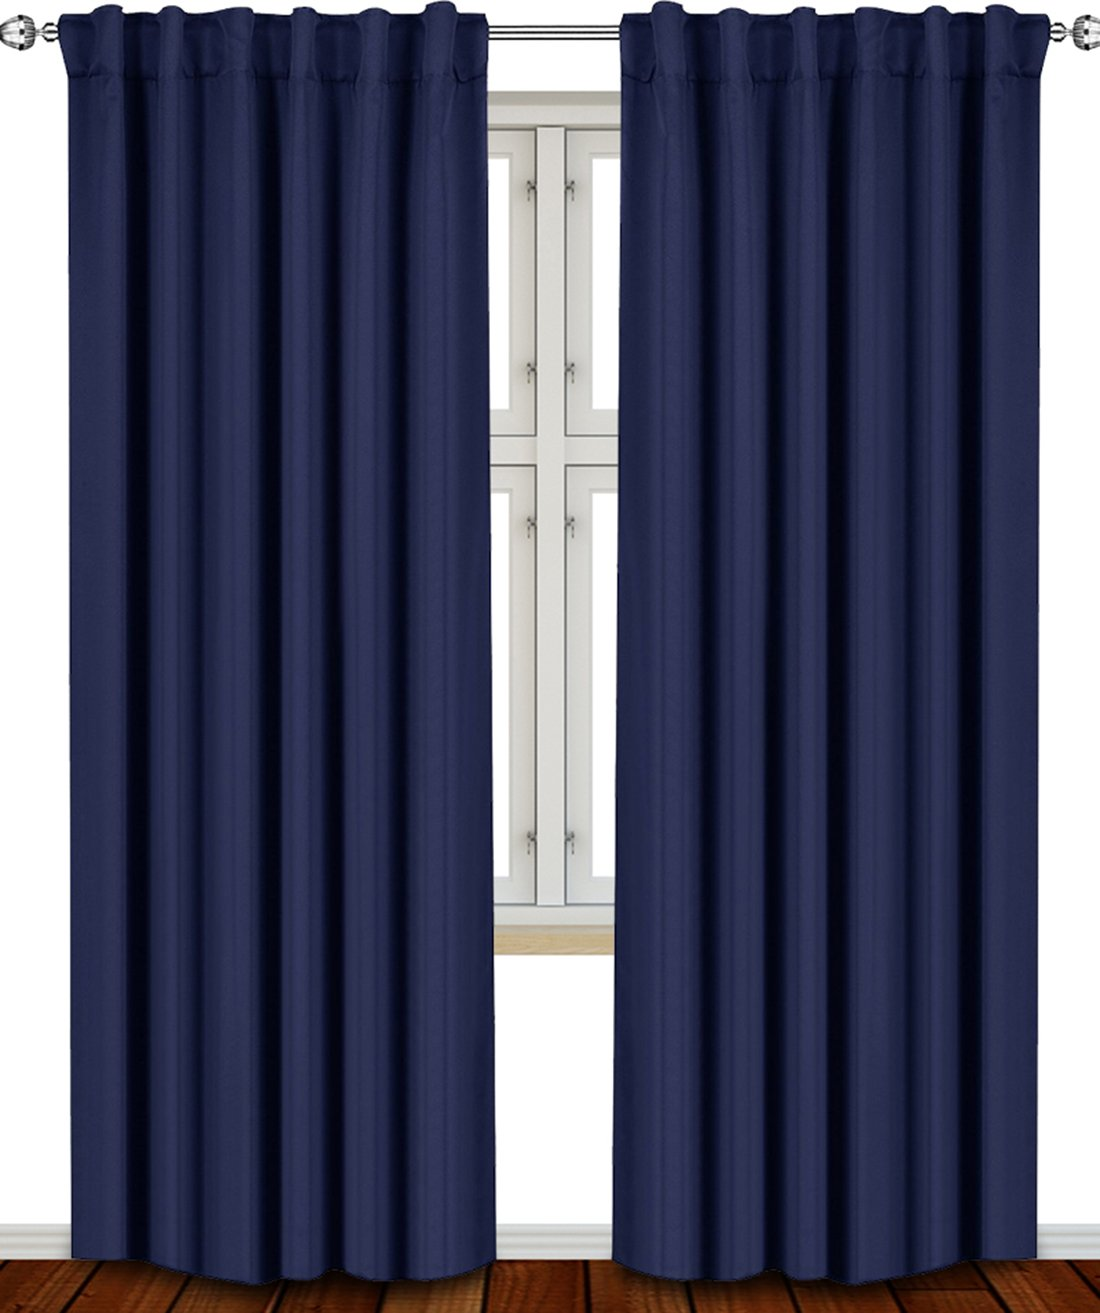 bedroom grommet room in lined zero colour dining cheap furniture navy curtain drapes emden inch store panel window cool triple blackout curtains darkening sun